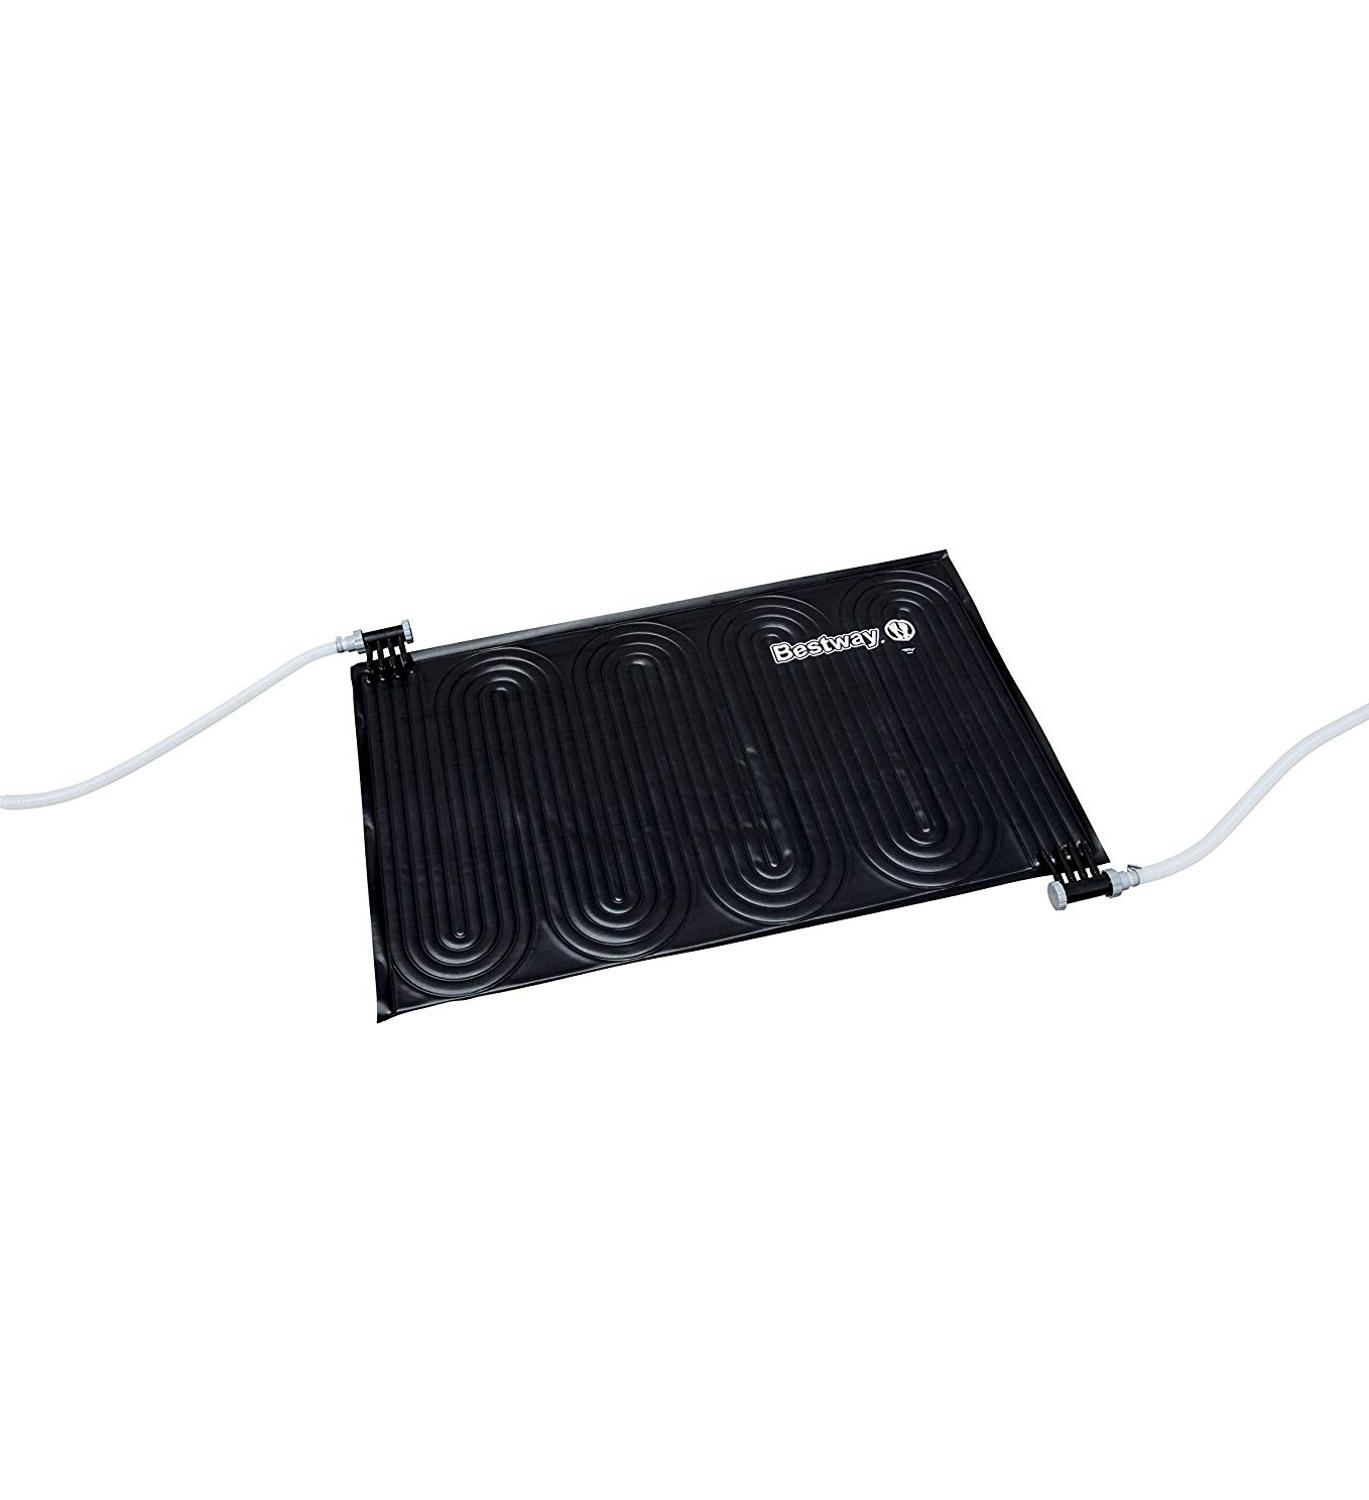 Mat For Water Heating Solar Energy 110 х171см, Bestway, Item No. 58423